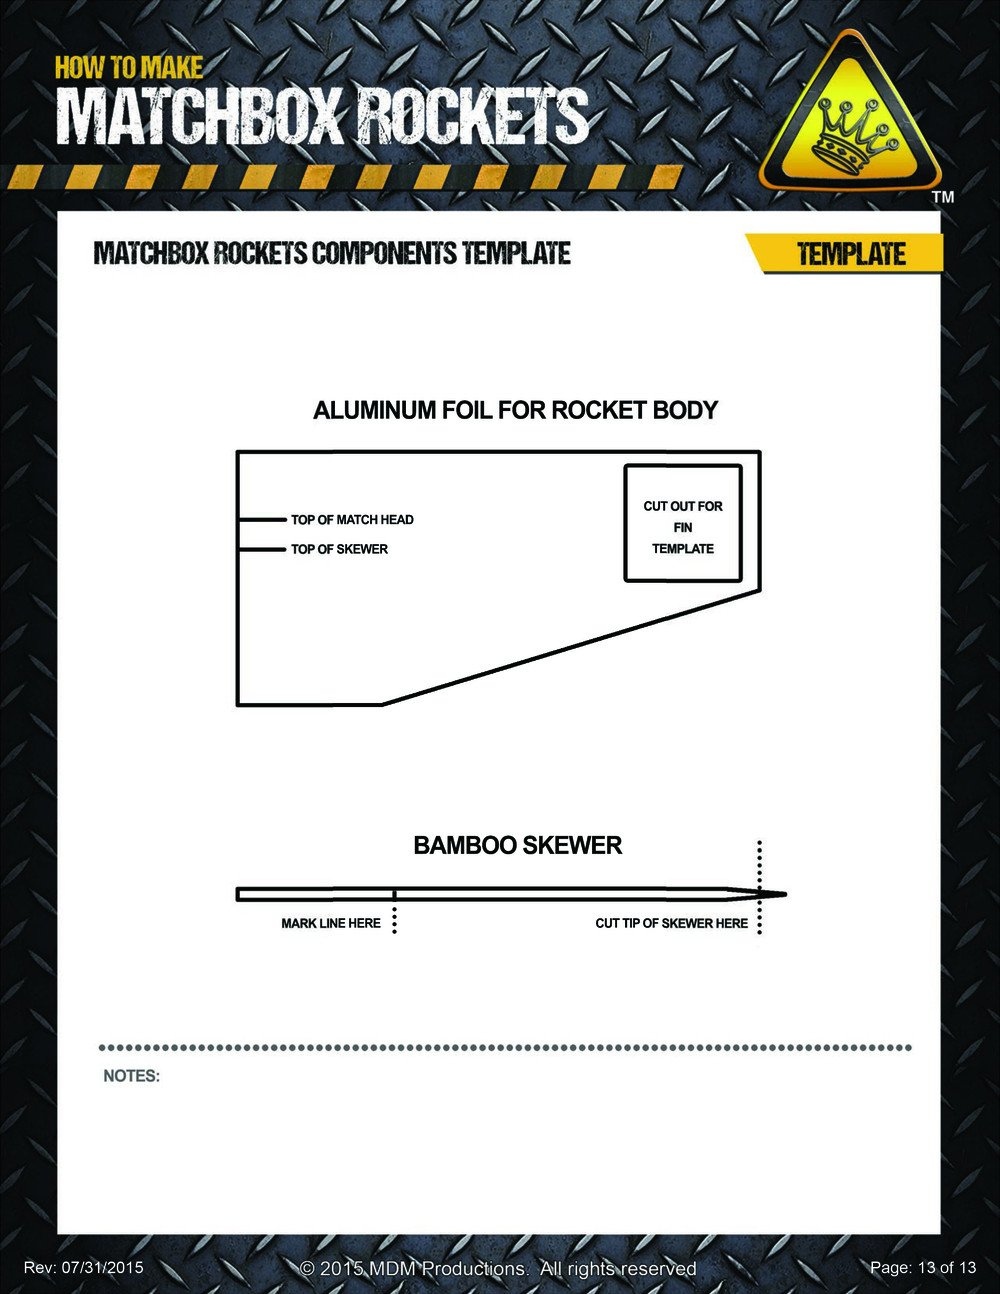 Matchbox Rockets Template Matchbox Rockets Template — the King Of Random